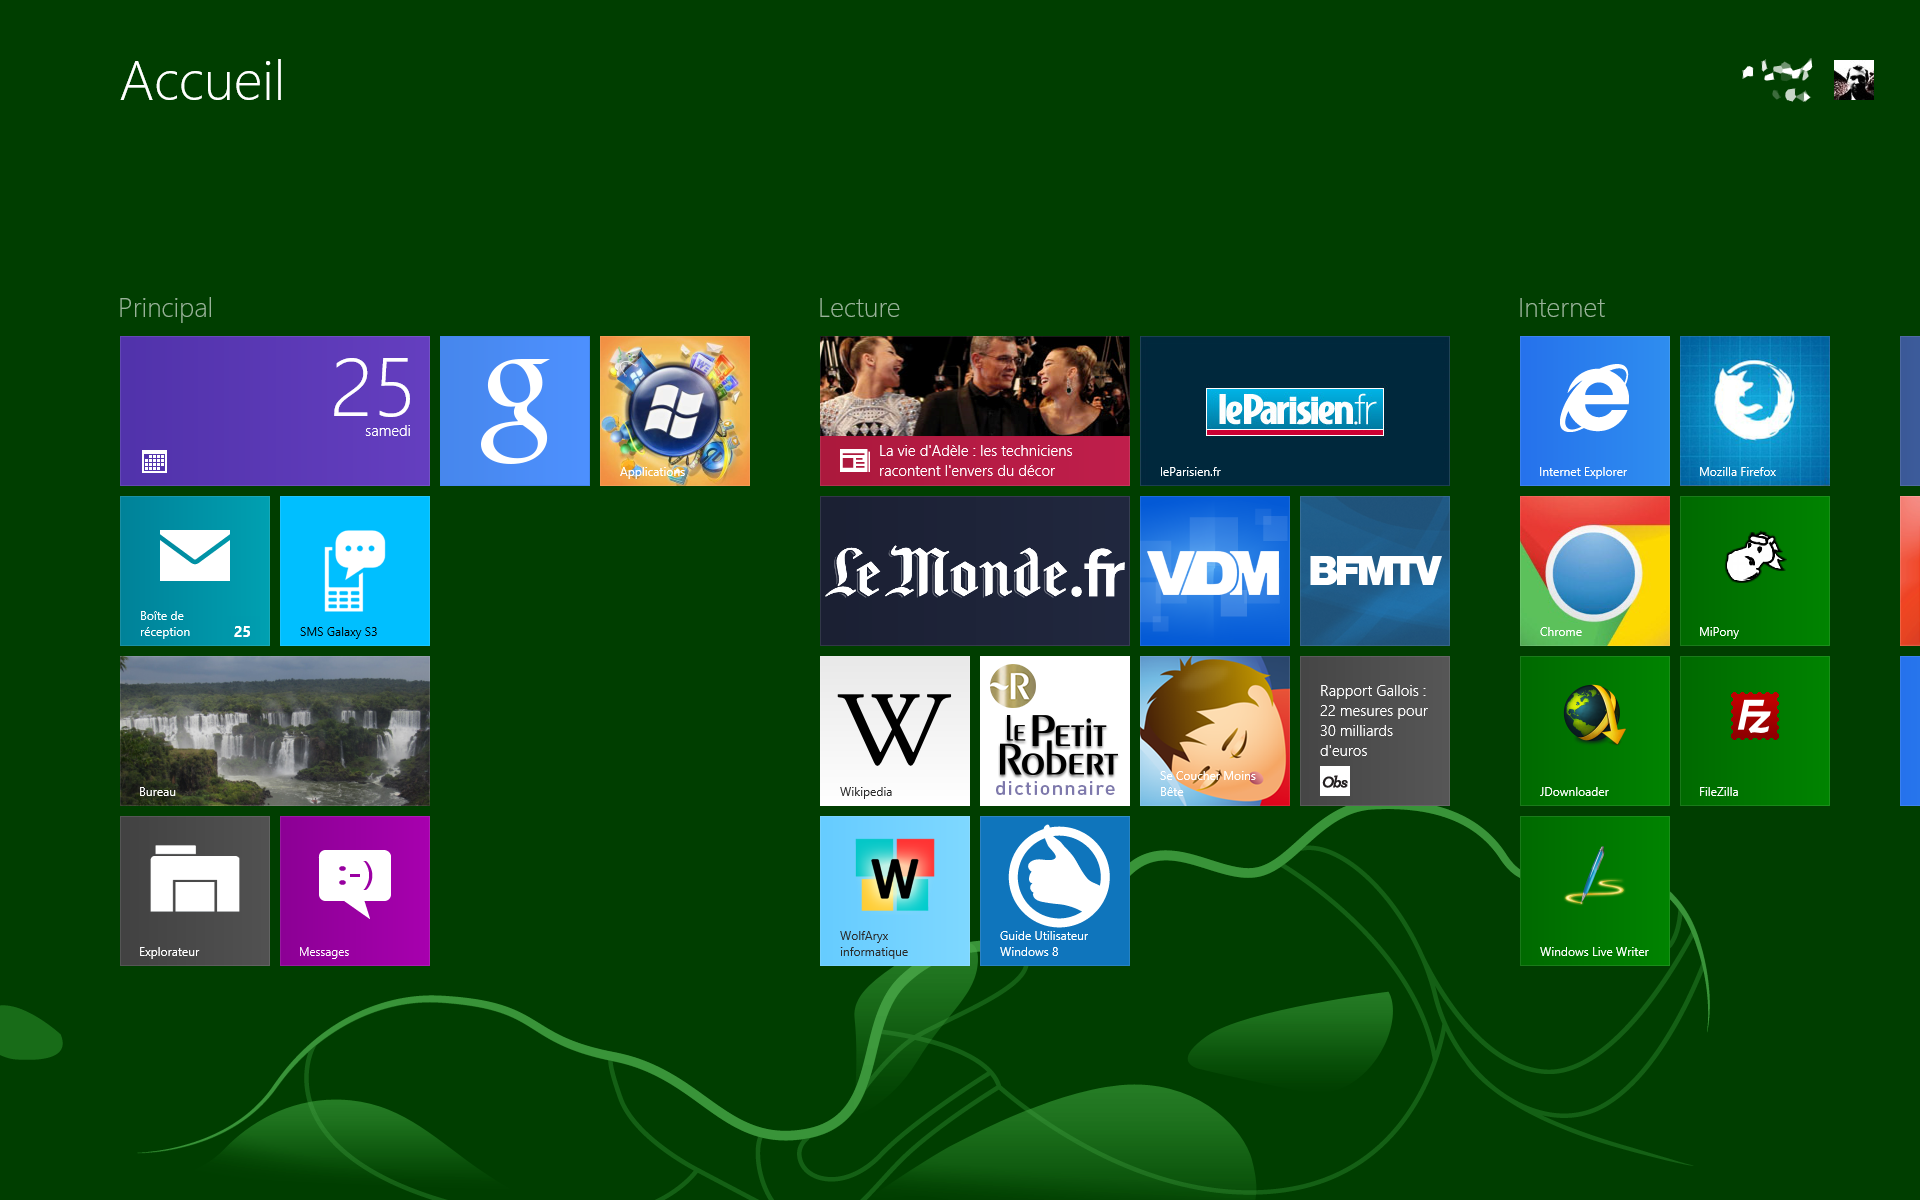 Changer Le Fond De Lécran Daccueil De Windows 8 Wolfaryx